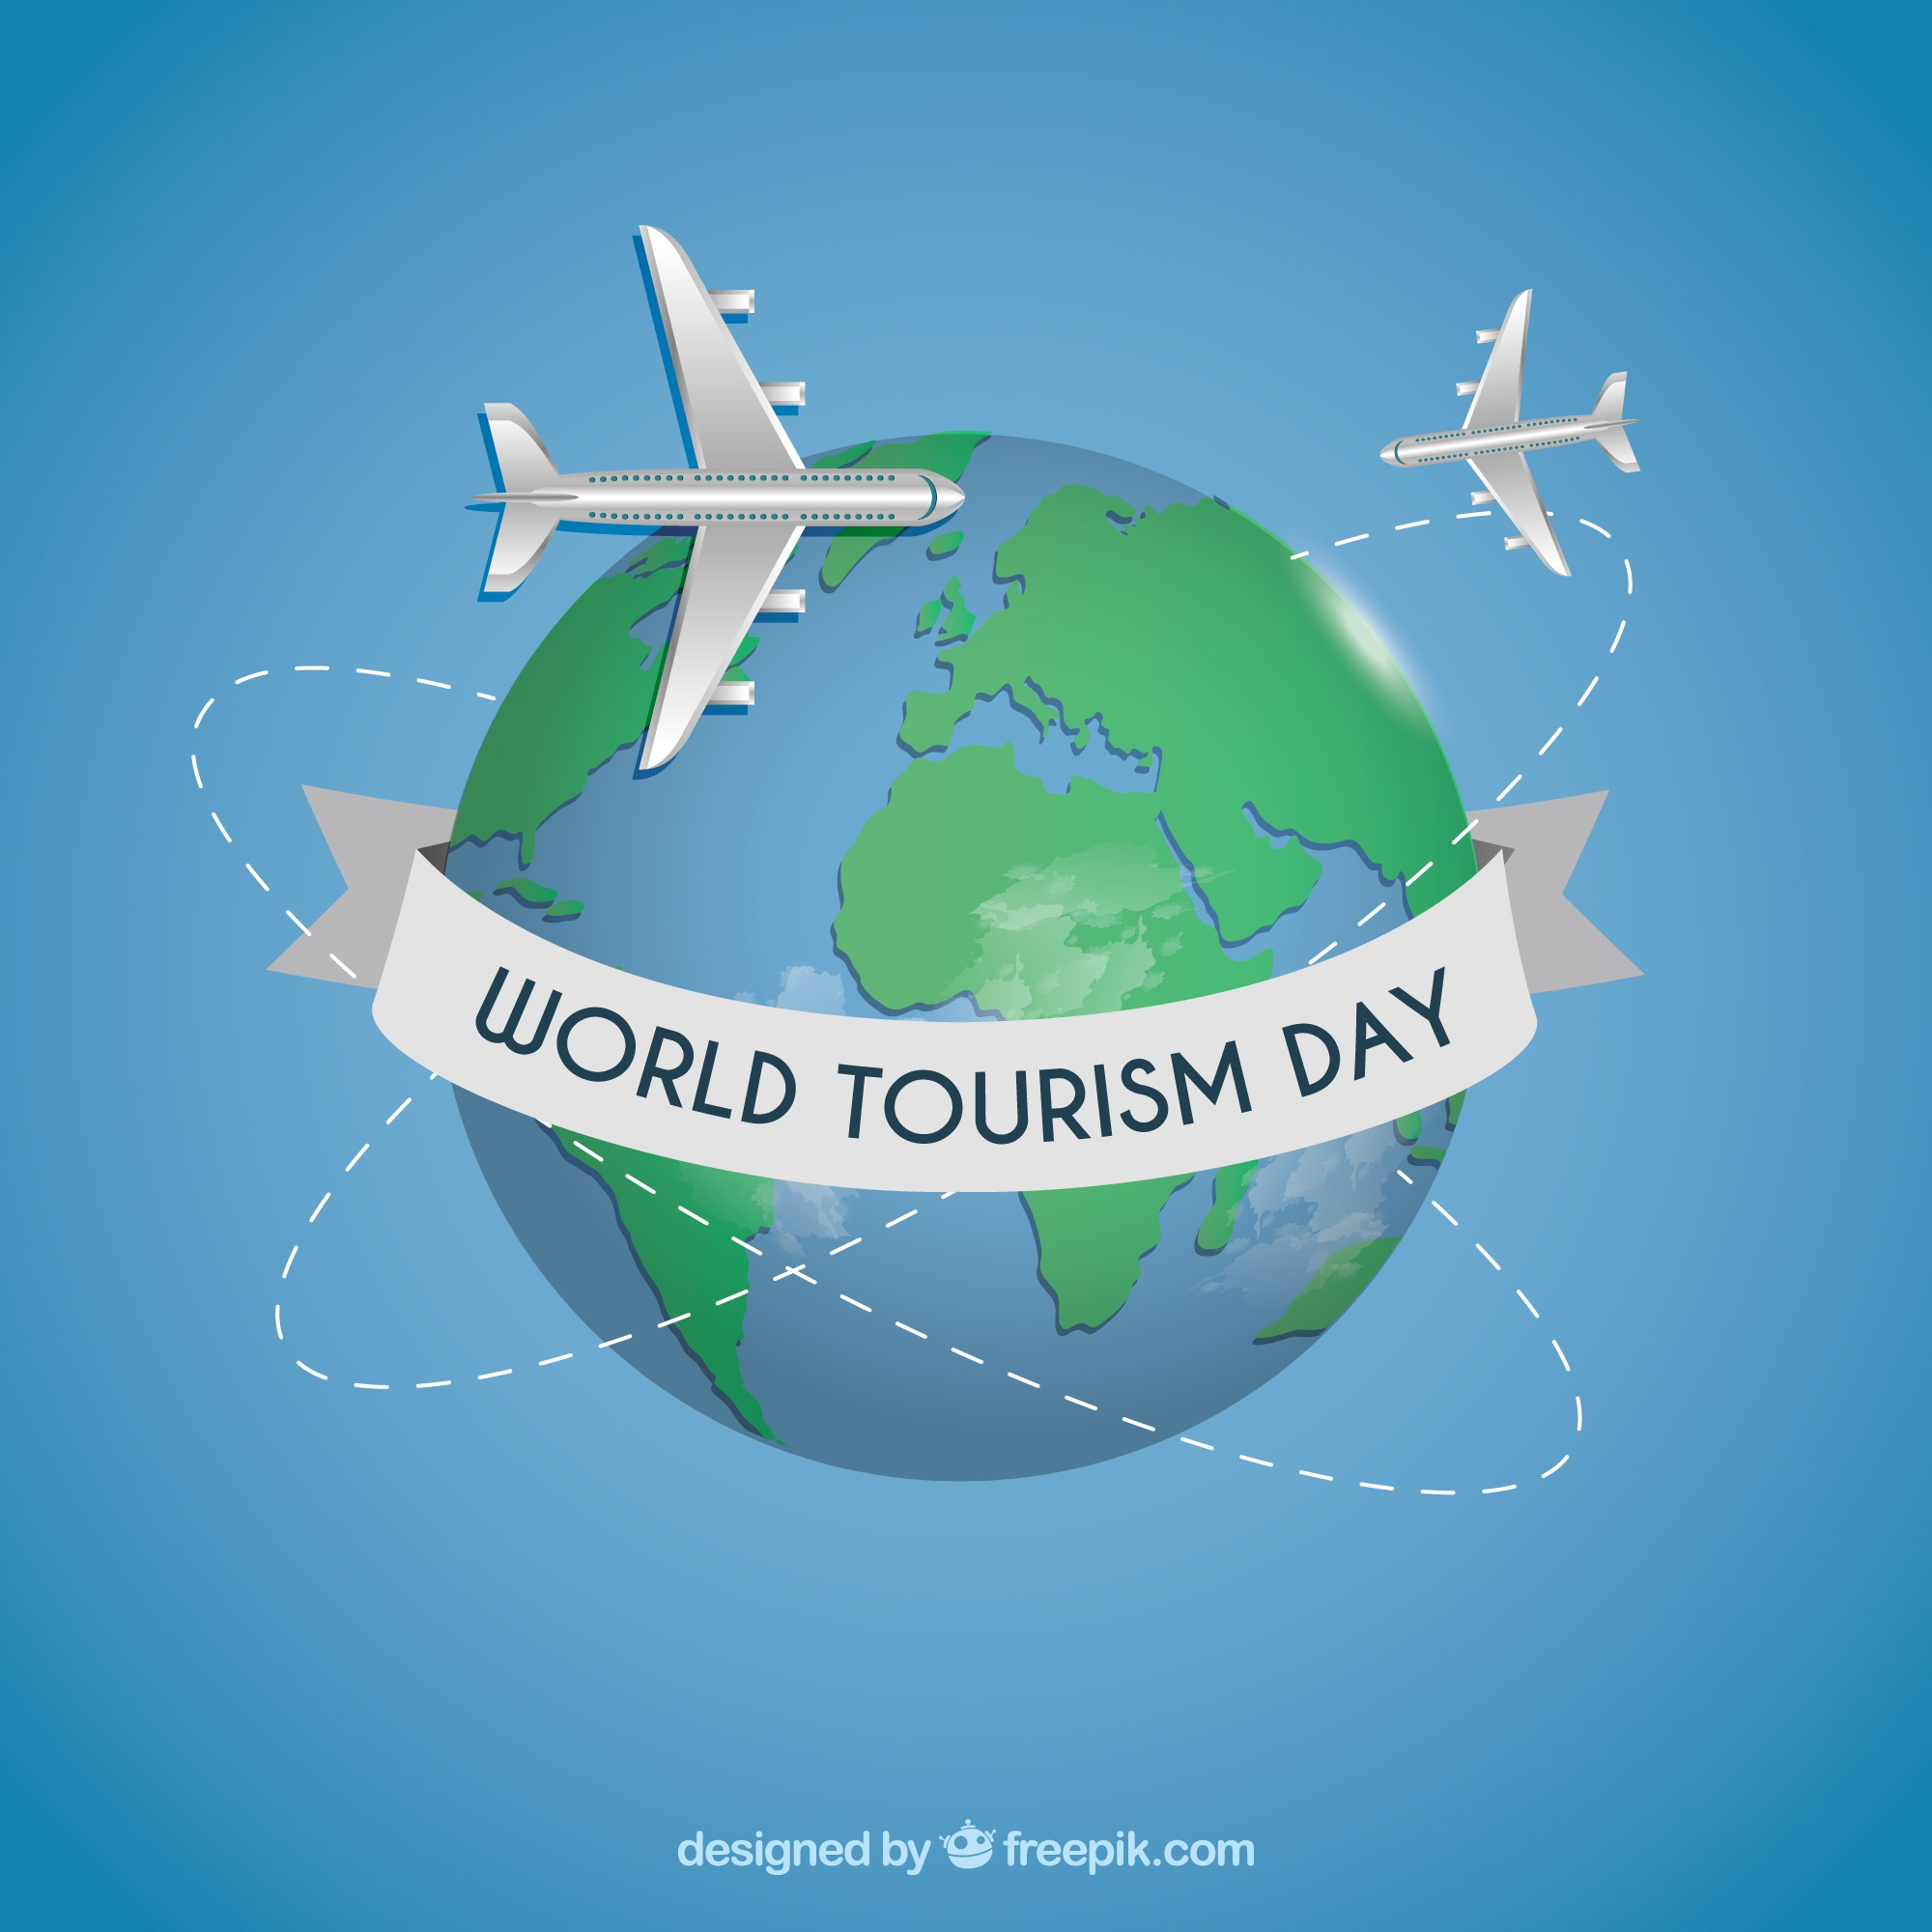 World tourism day background with earth globe